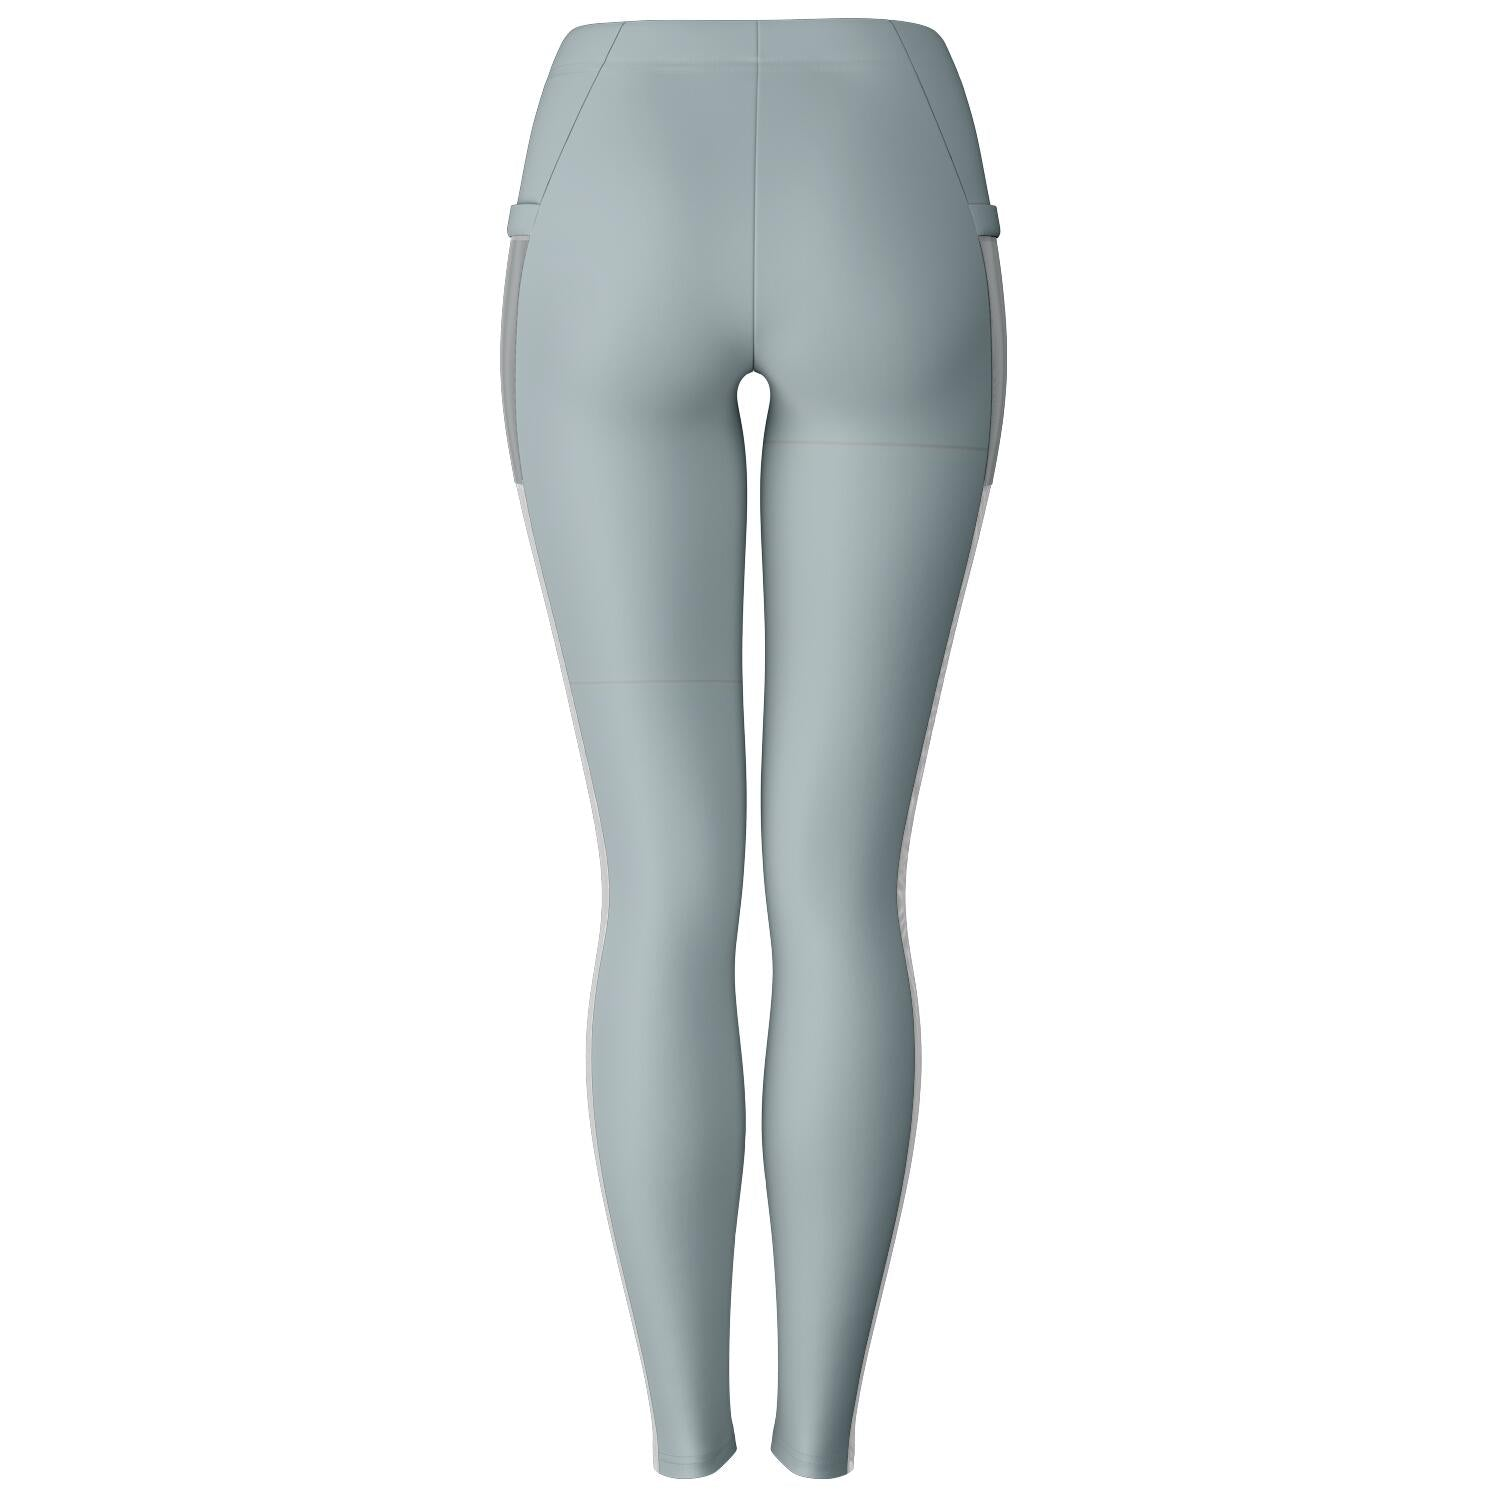 Basic Gray Yoga pants with mesh